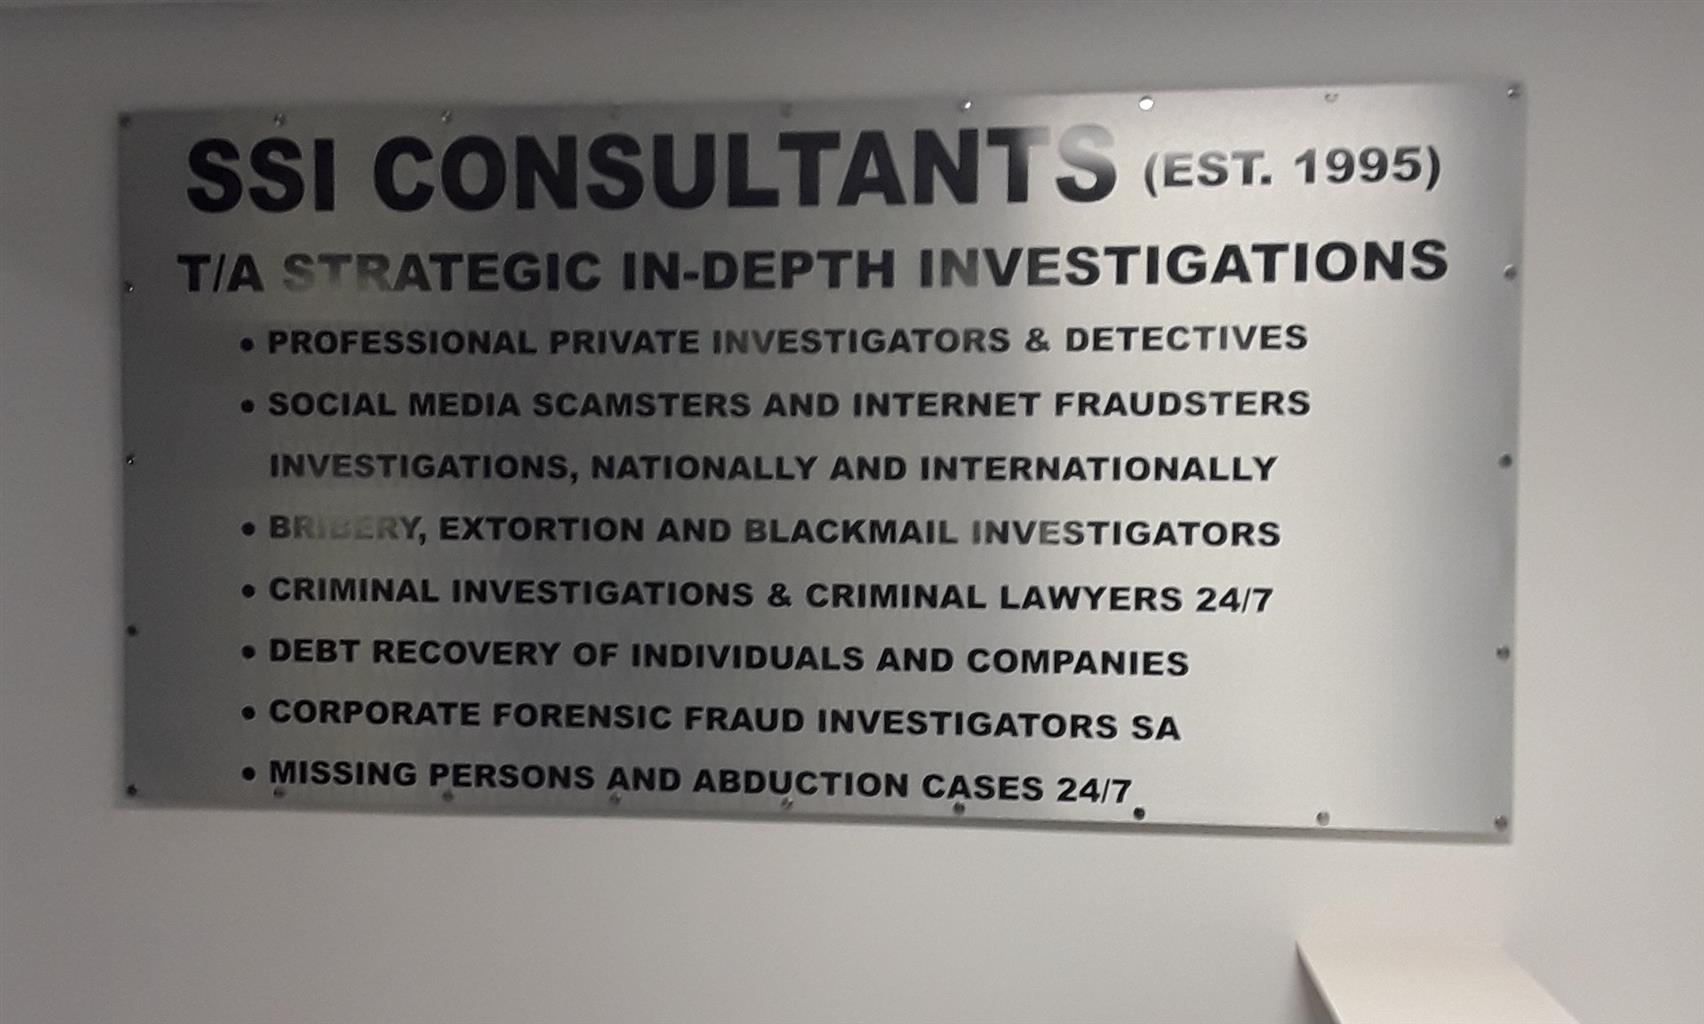 PRIVATE INVESTIGATORS@0780071412 TOP SPECIALISTS DETECTIVES 24/7 IN GAUTENG SSICONSULTANTS TA STRATEGIC IN DEPTH INVESTIGATIONS(EST.1995) HEAD OFFICE 0110261412 WHATSAPP 0780071412.OUR ALL HOURS 0824121149 CREDIT CARDS ACCEPTED